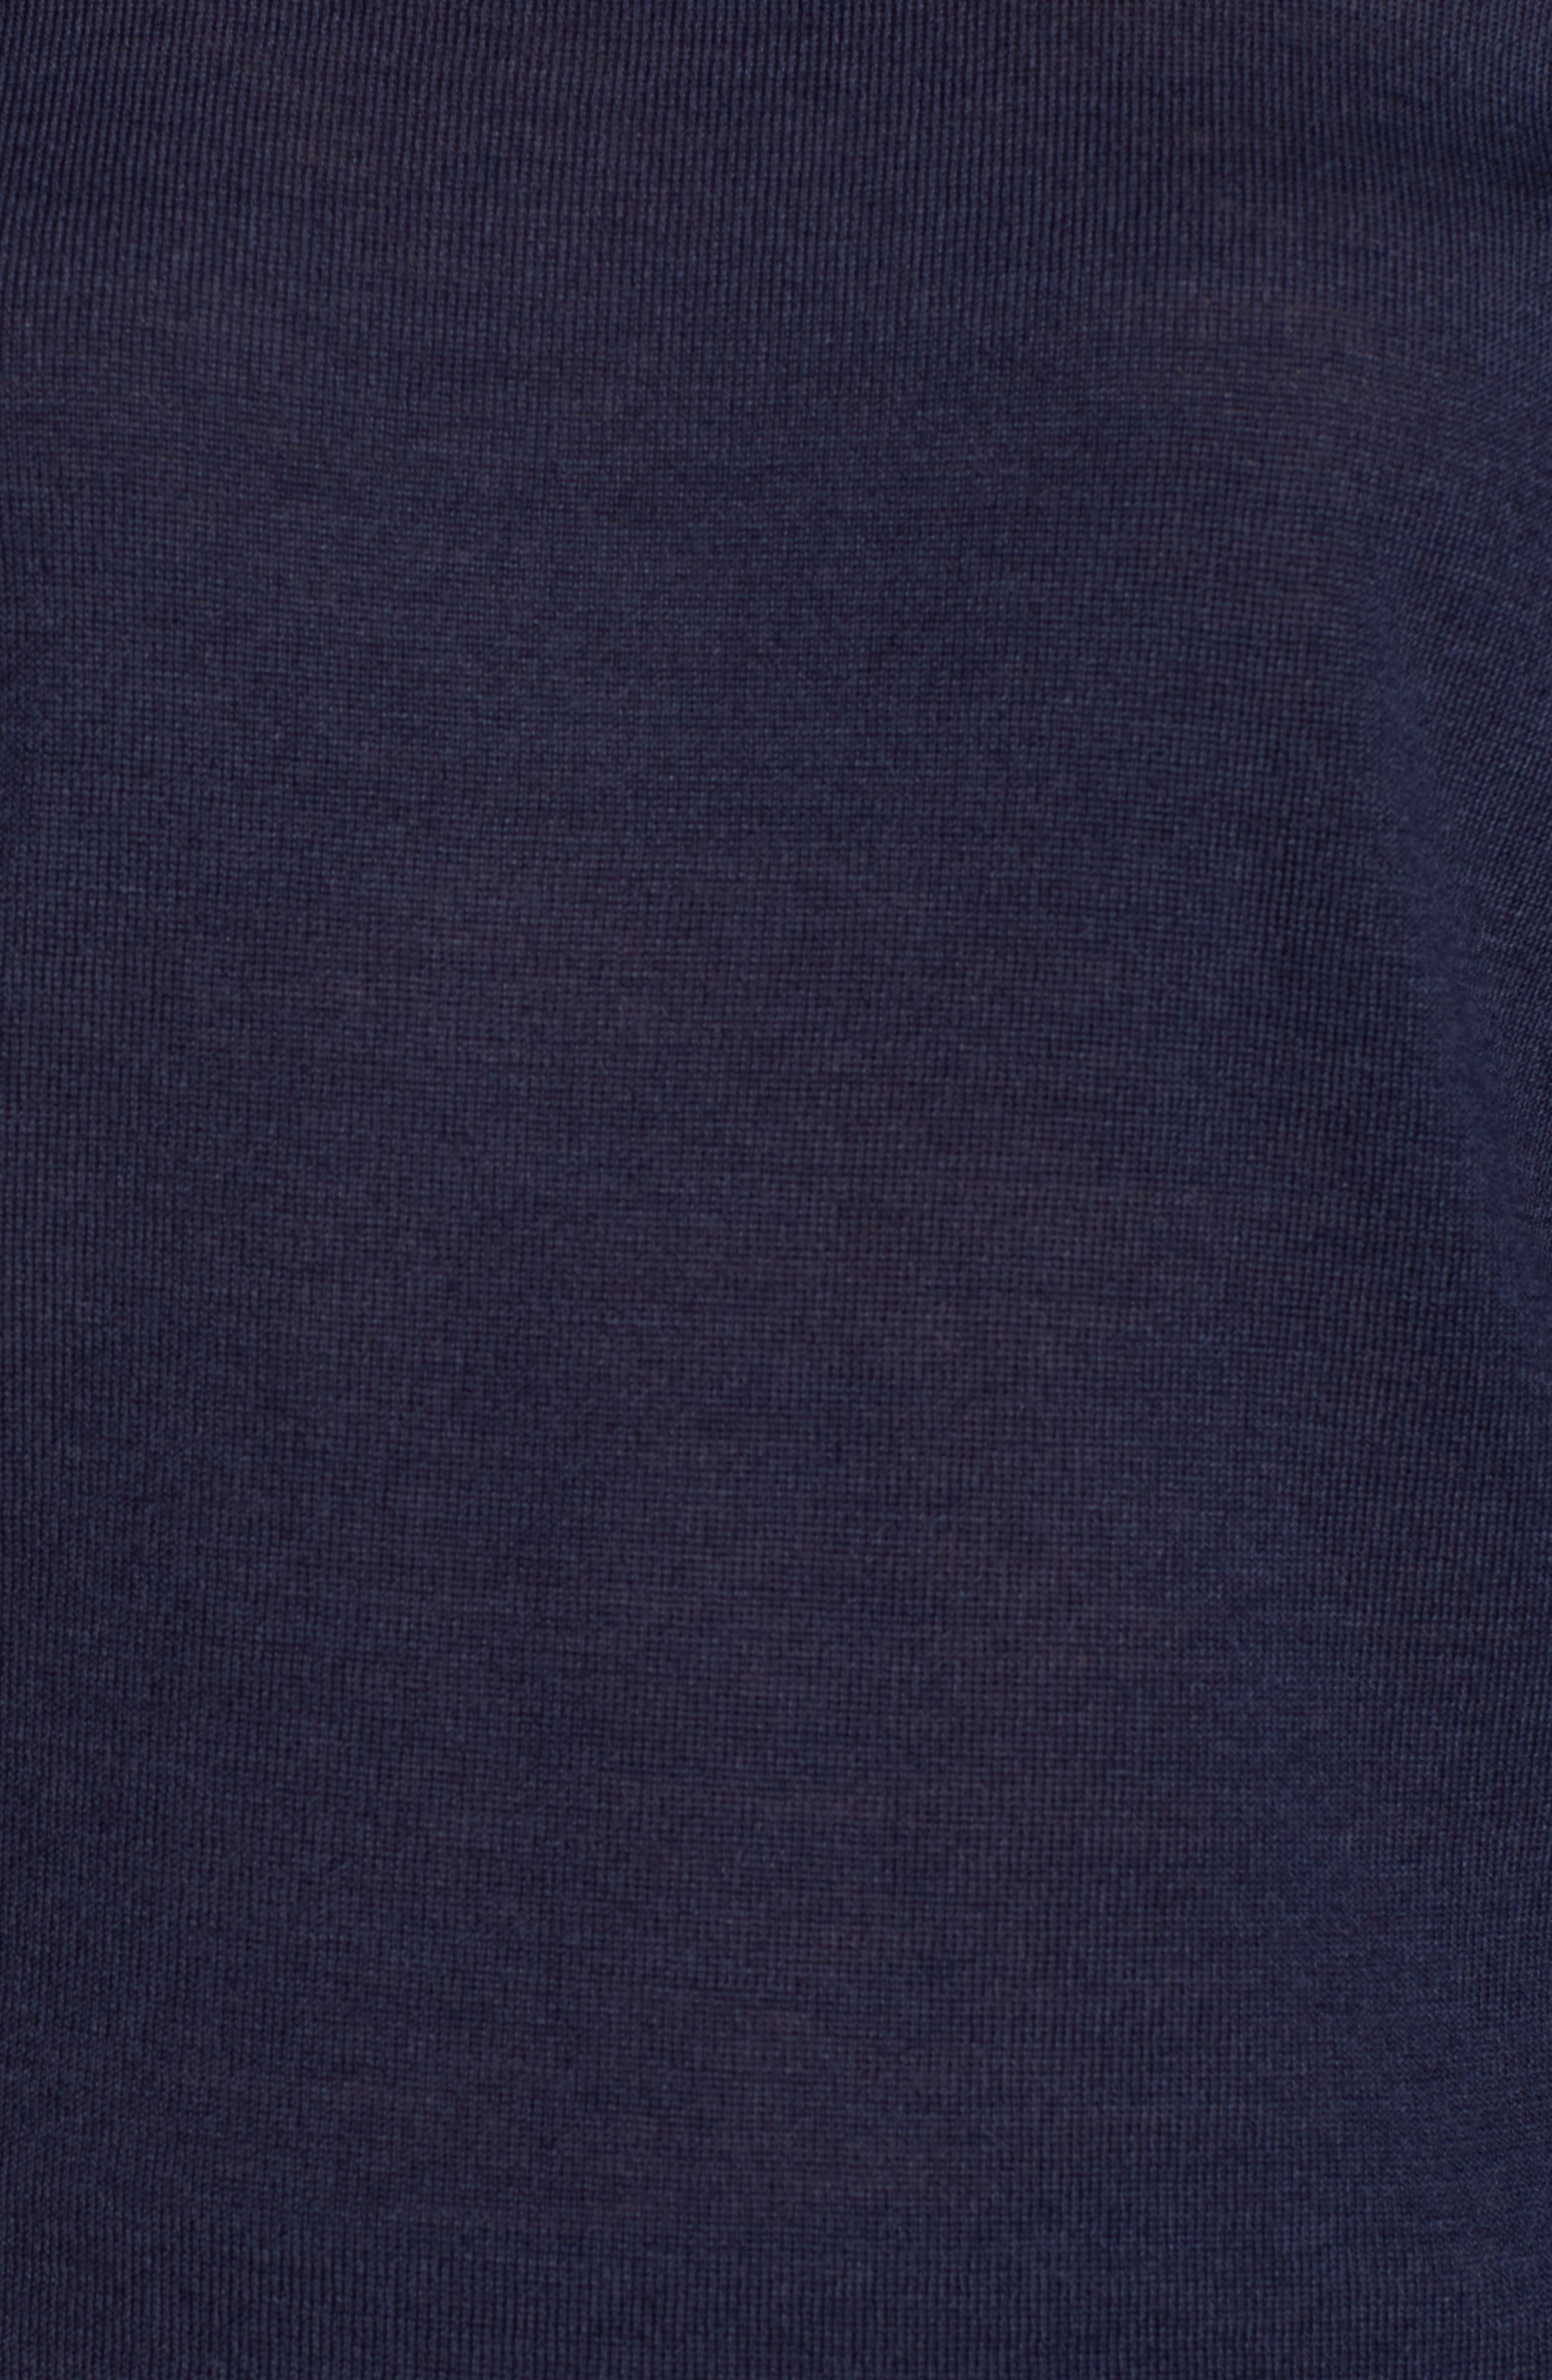 Puff Sleeve Sweater,                             Alternate thumbnail 46, color,